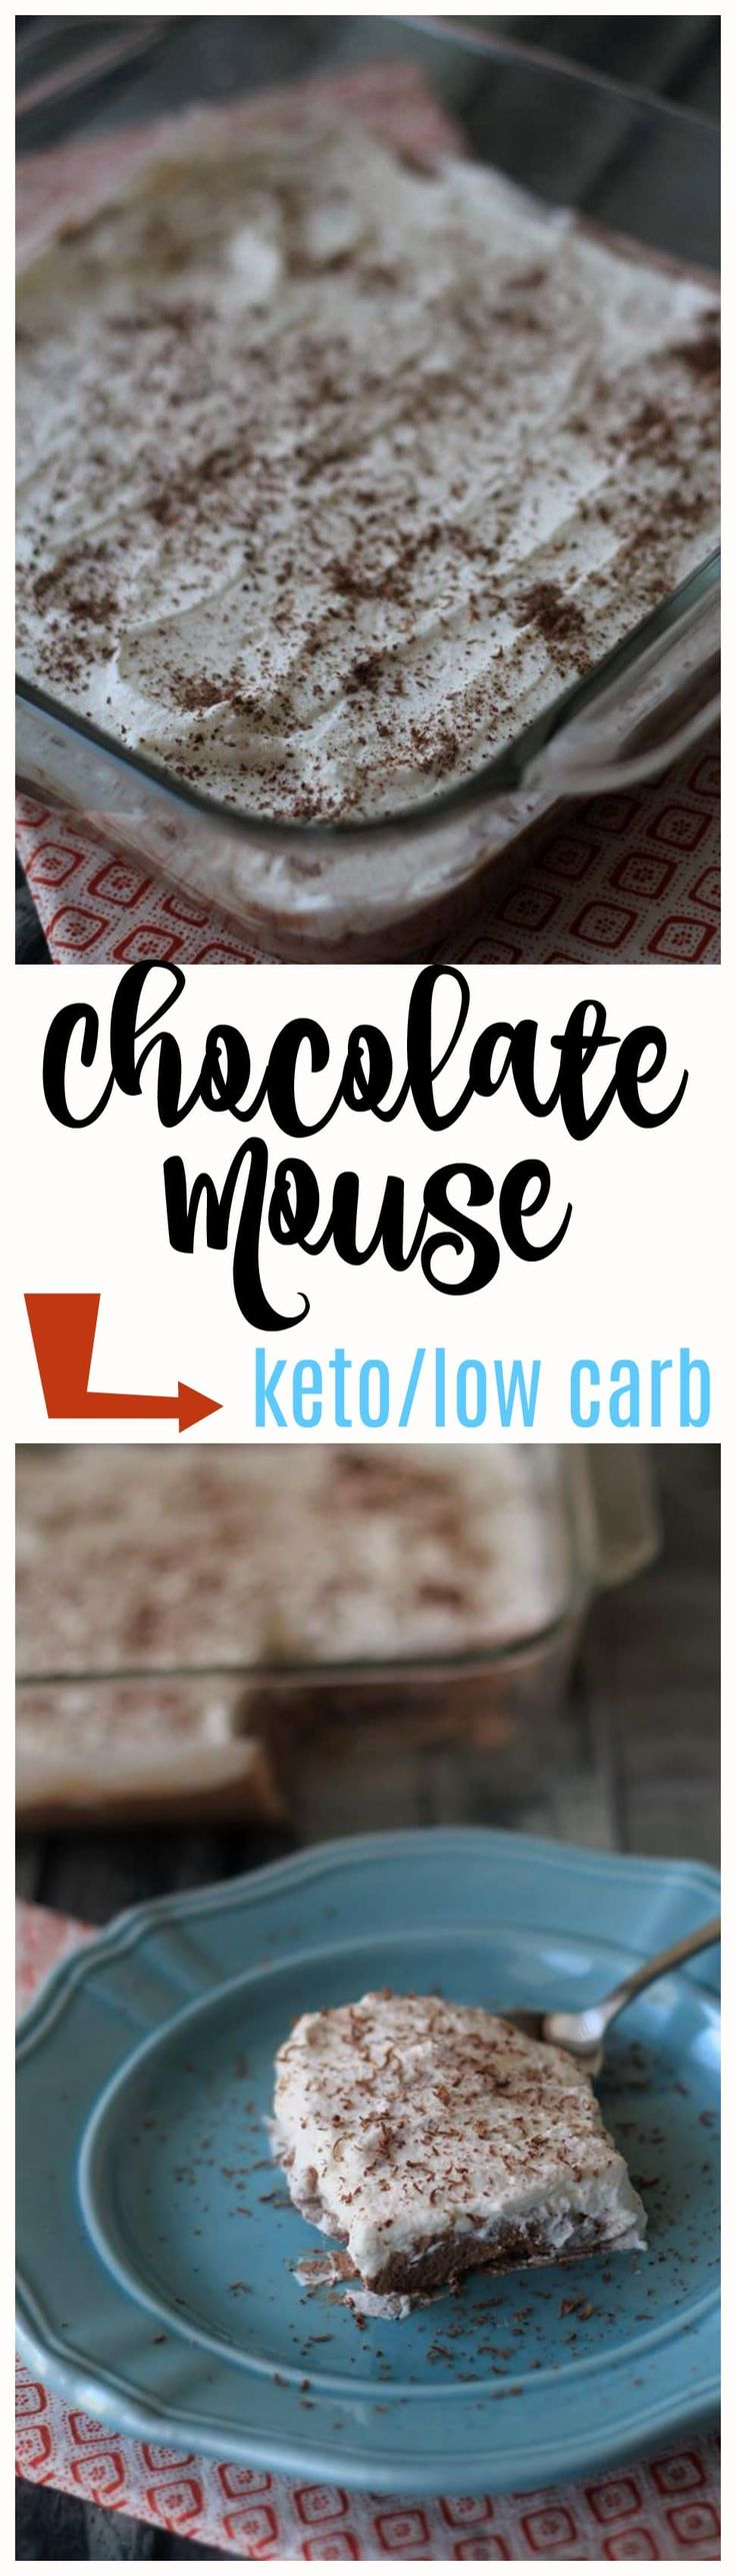 This Chocolate Mousse is absolutely delicious. I've already made it 2 times since last week and my family loves it. It's the perfect treat with only 2 carbs per serving.